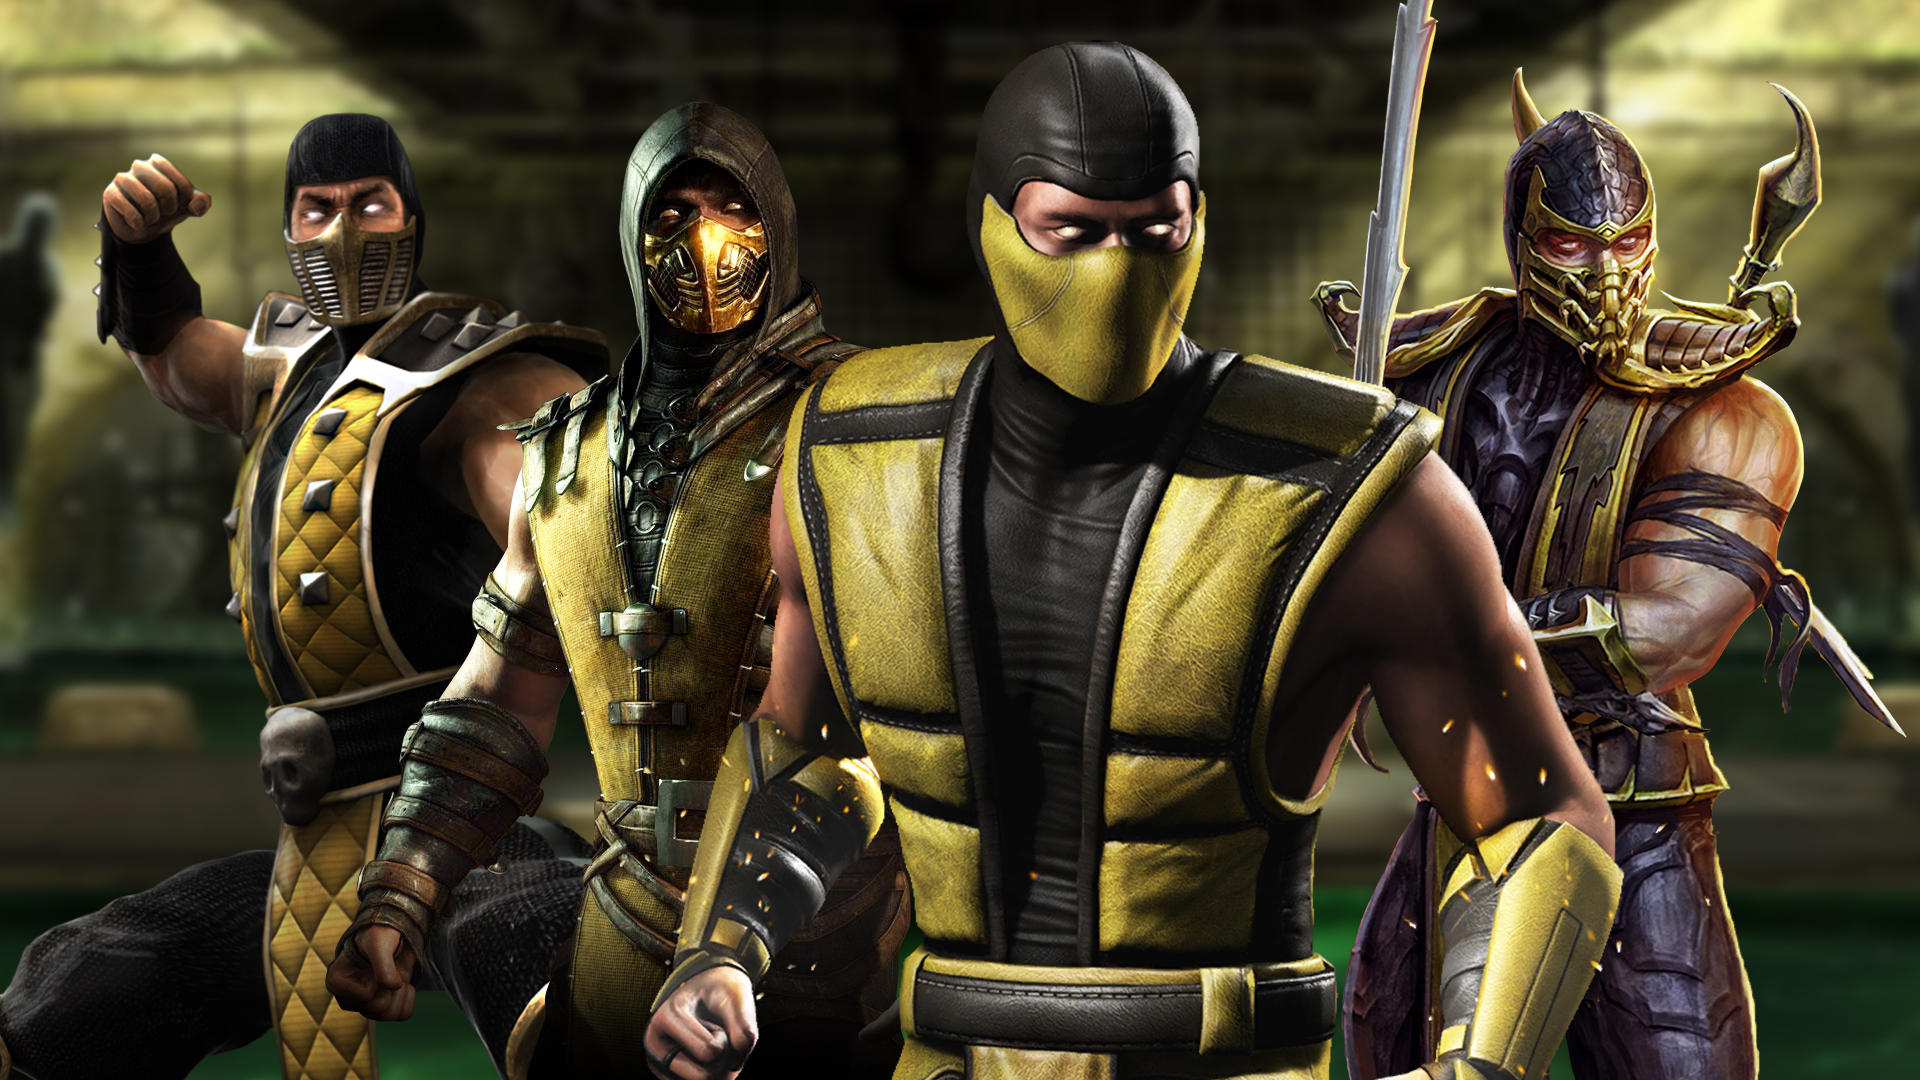 The Origins of Scorpion - Mortal Kombat's most iconic character